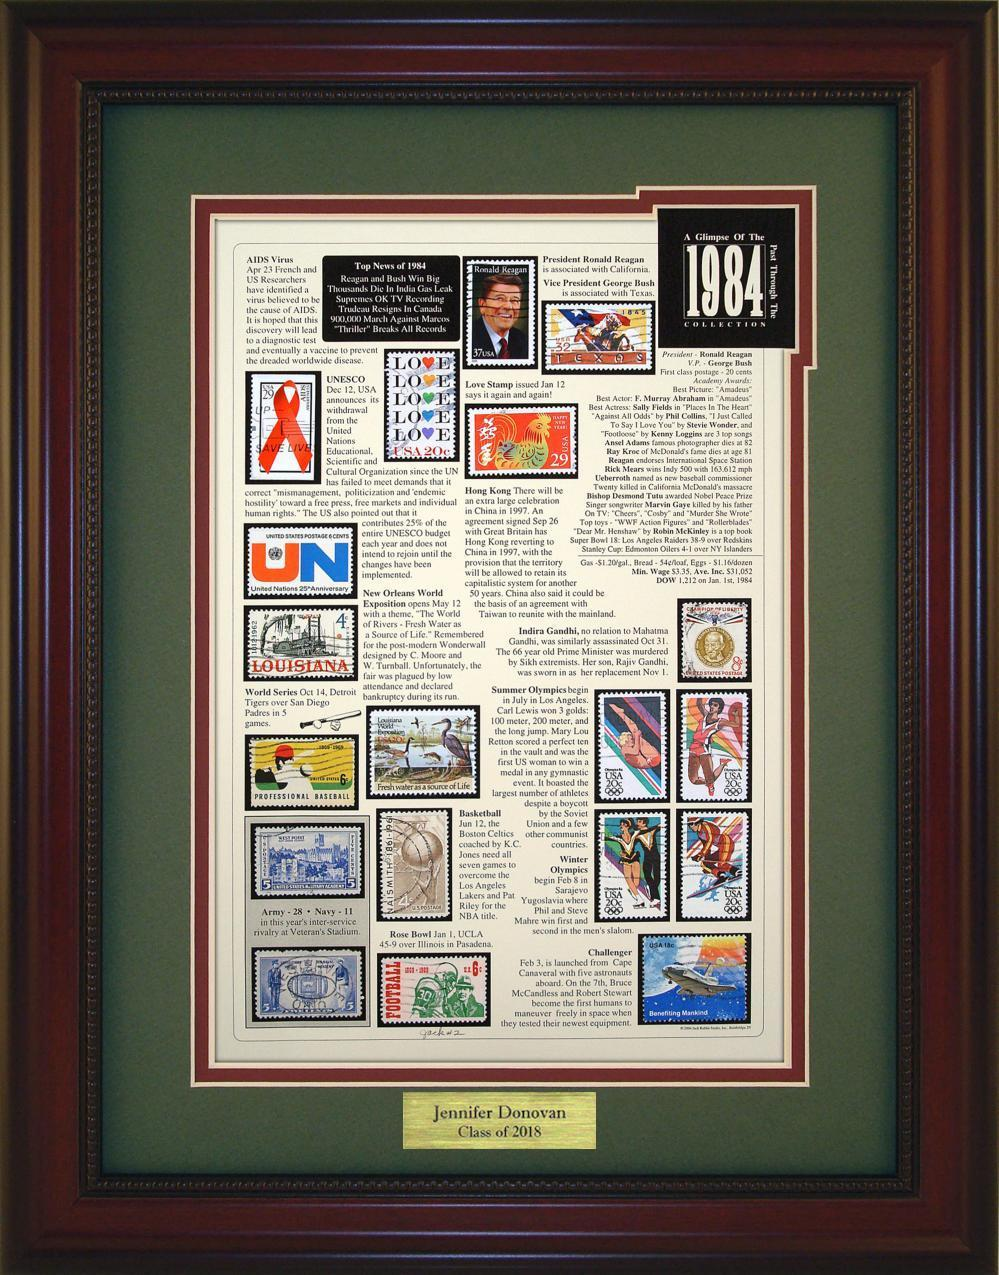 Year 1984 - Personalized Unique Framed Gift